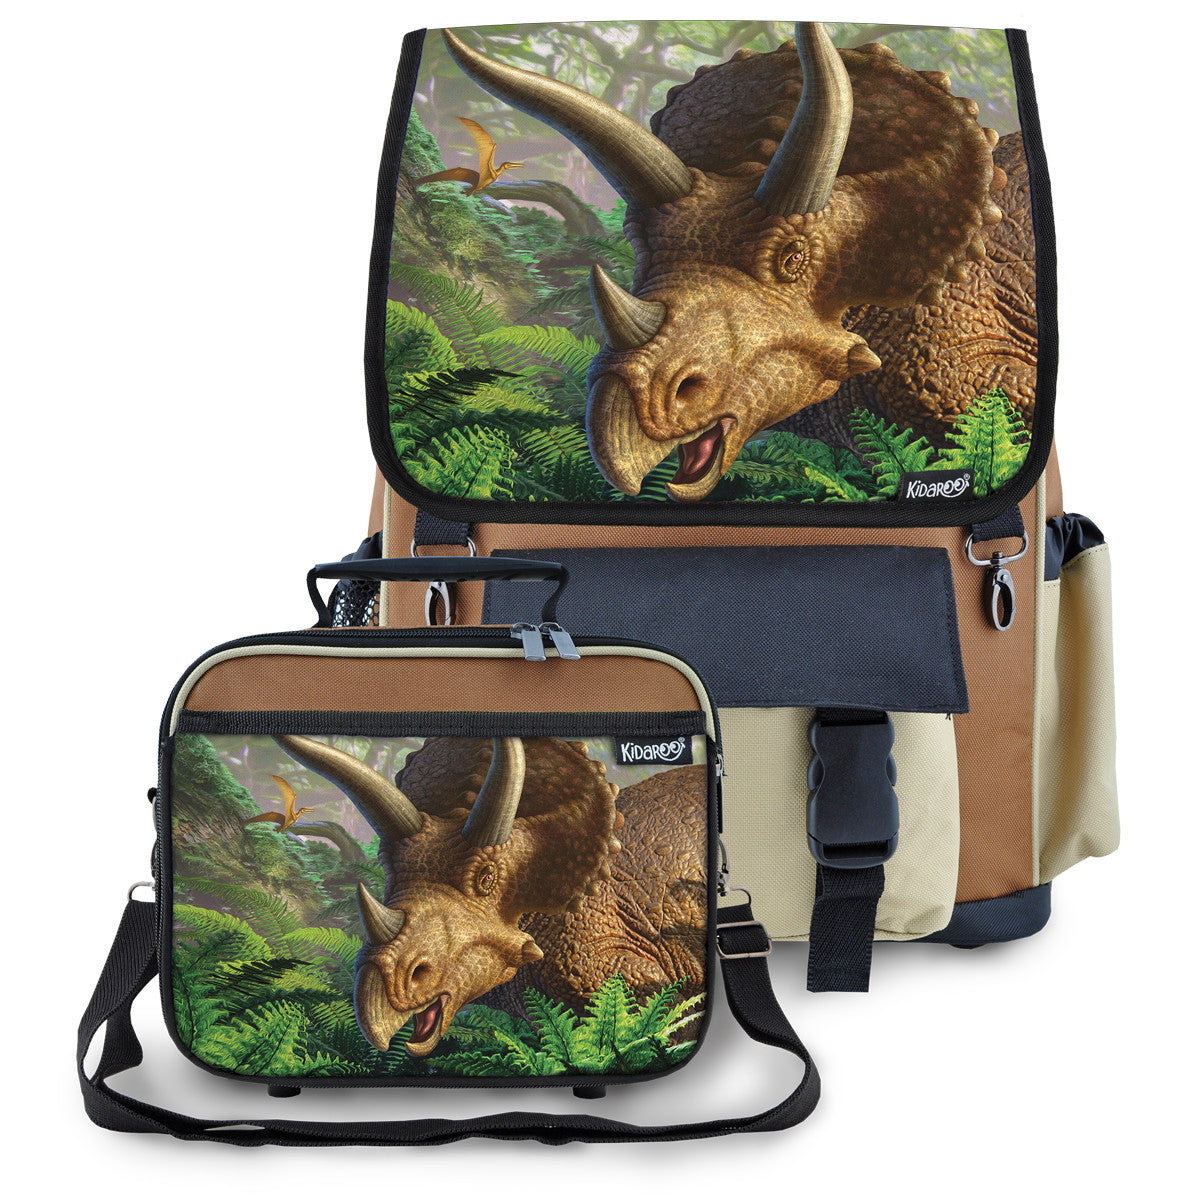 Kidaroo Brown Triceratops Dinosaur School Backpack & Lunchbox Set for Boys, Girls, Kids